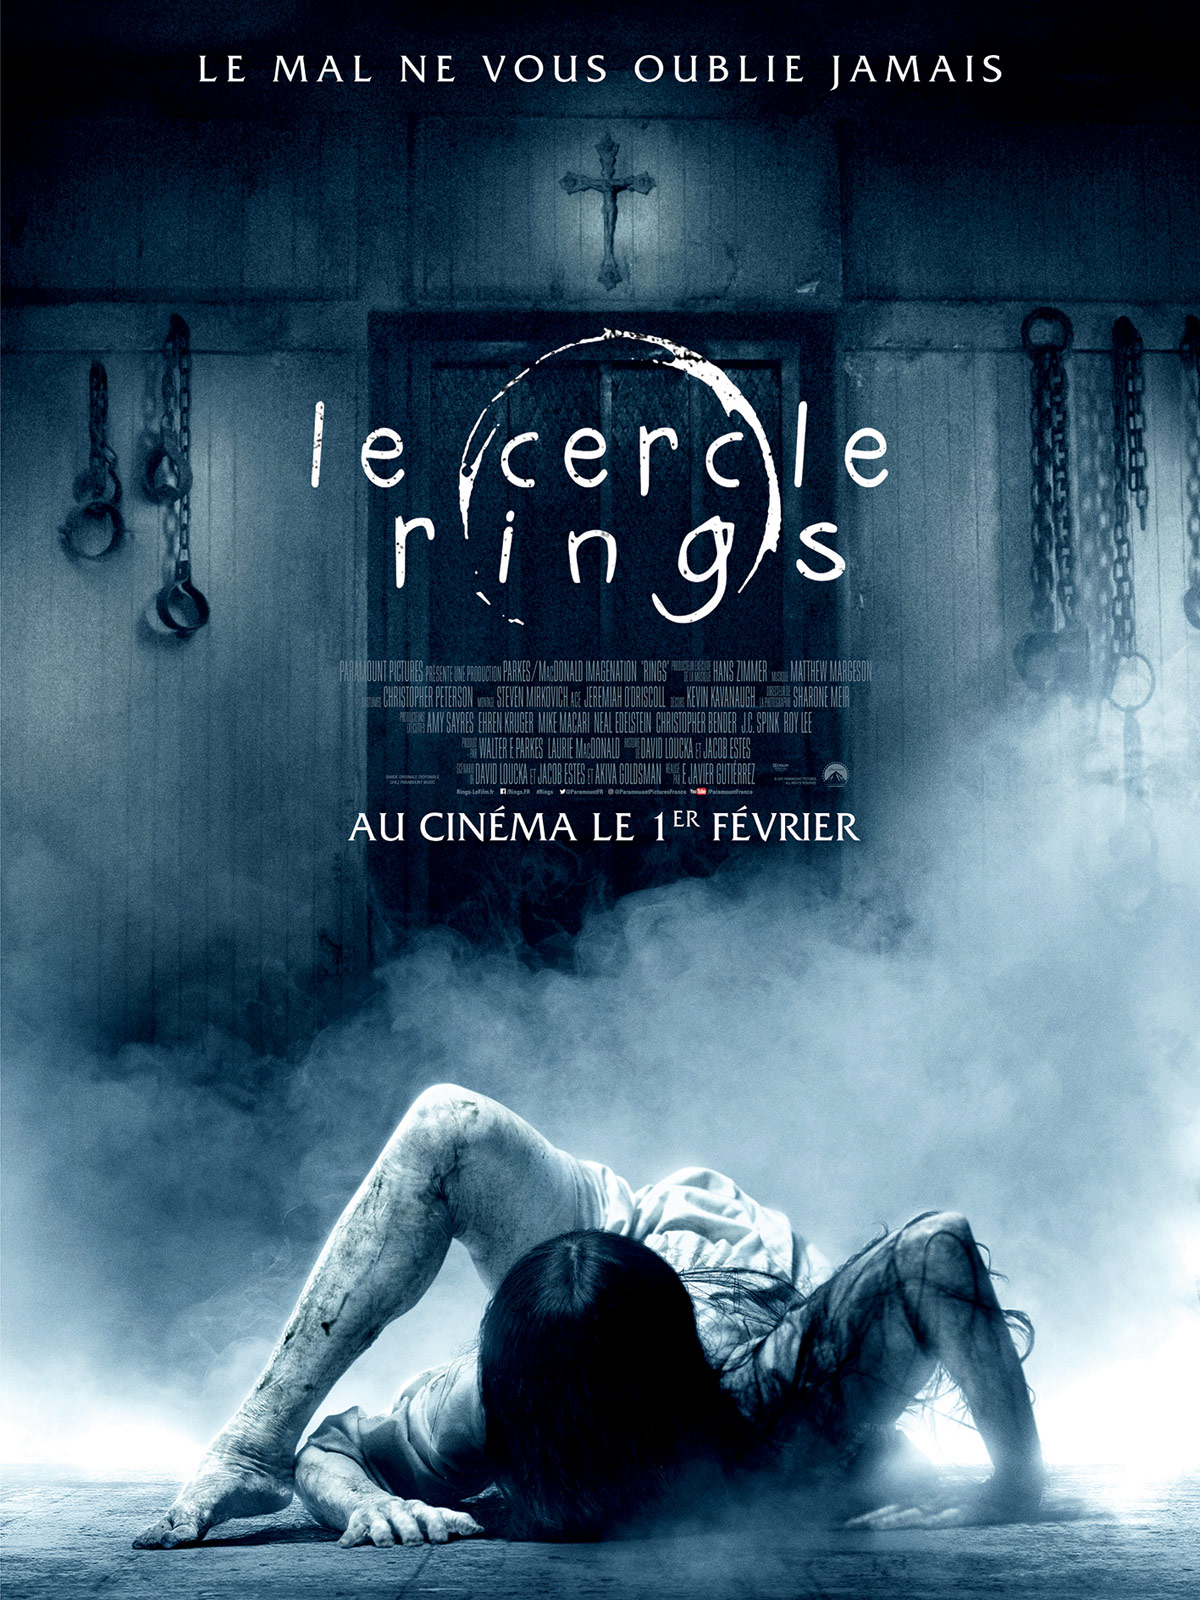 Le Cercle Rings